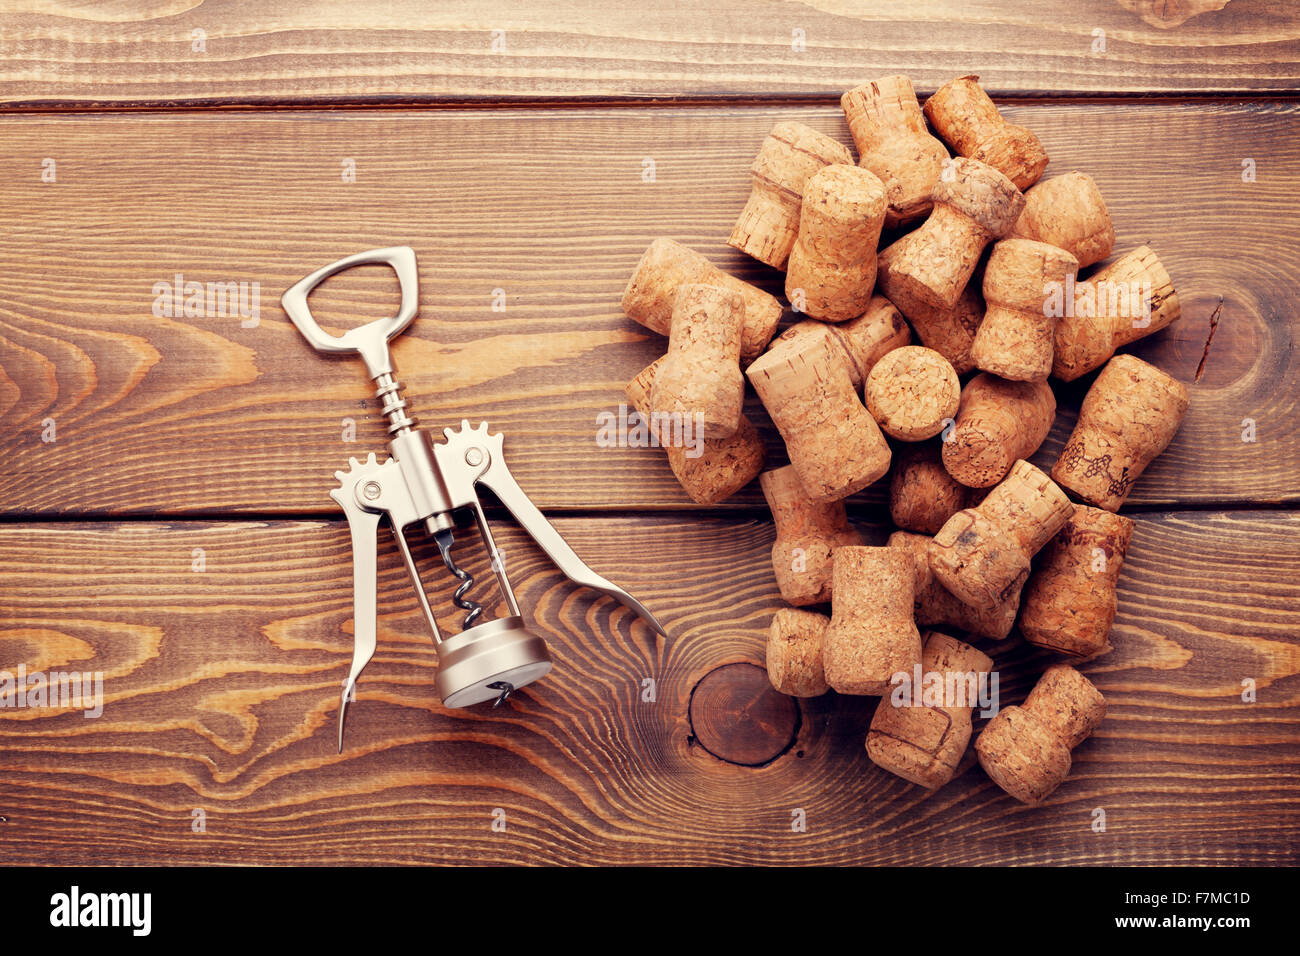 Stock Photo   Wine Corks And Corkscrew Over Rustic Wooden Table Background.  Top View